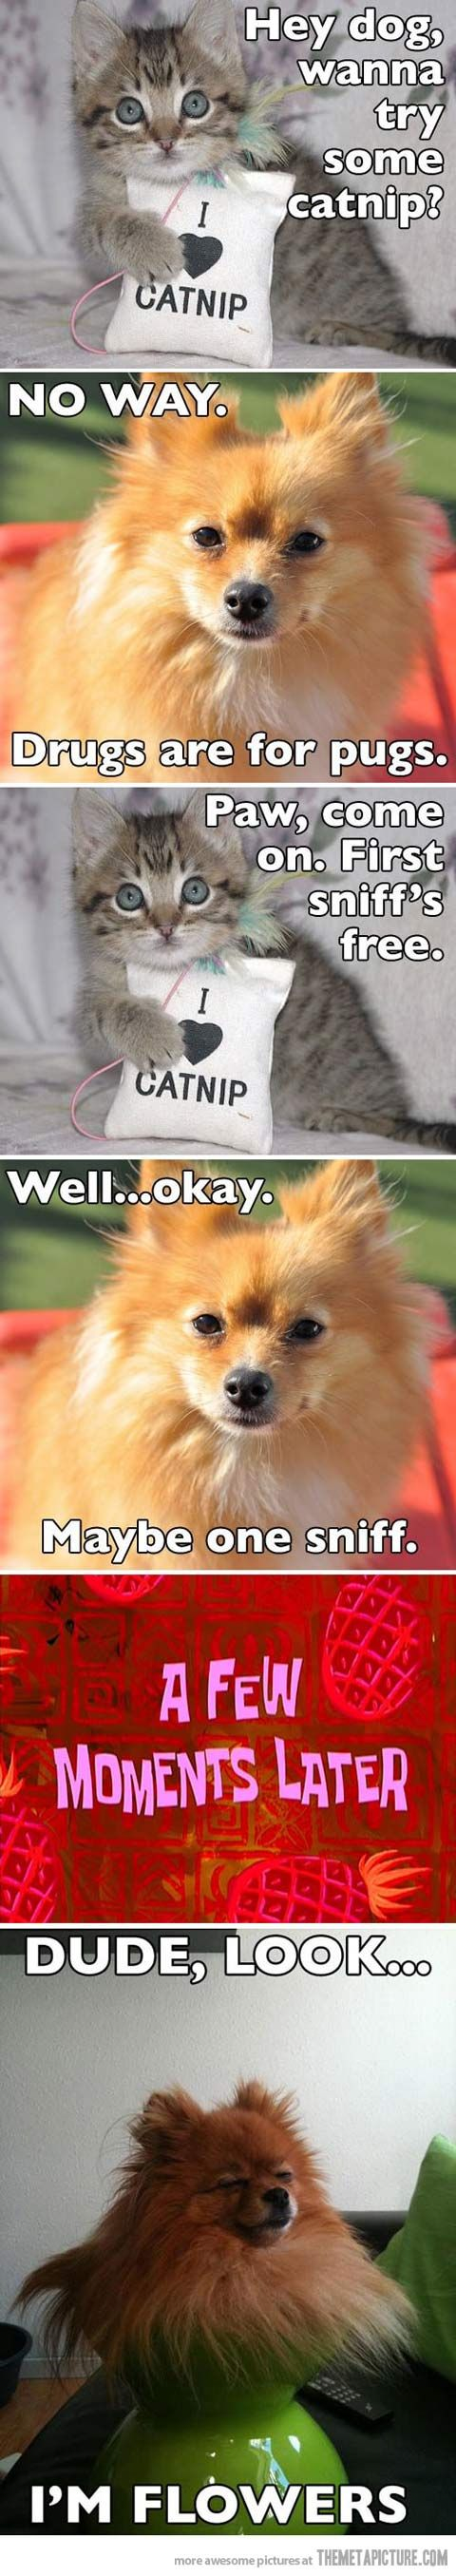 Haha: Animal Jokes, Drugs, Animal Humor, Dogs Cat, Cat Nip Funny, Funny Animal, Funny Puppies, So Funny, Flower